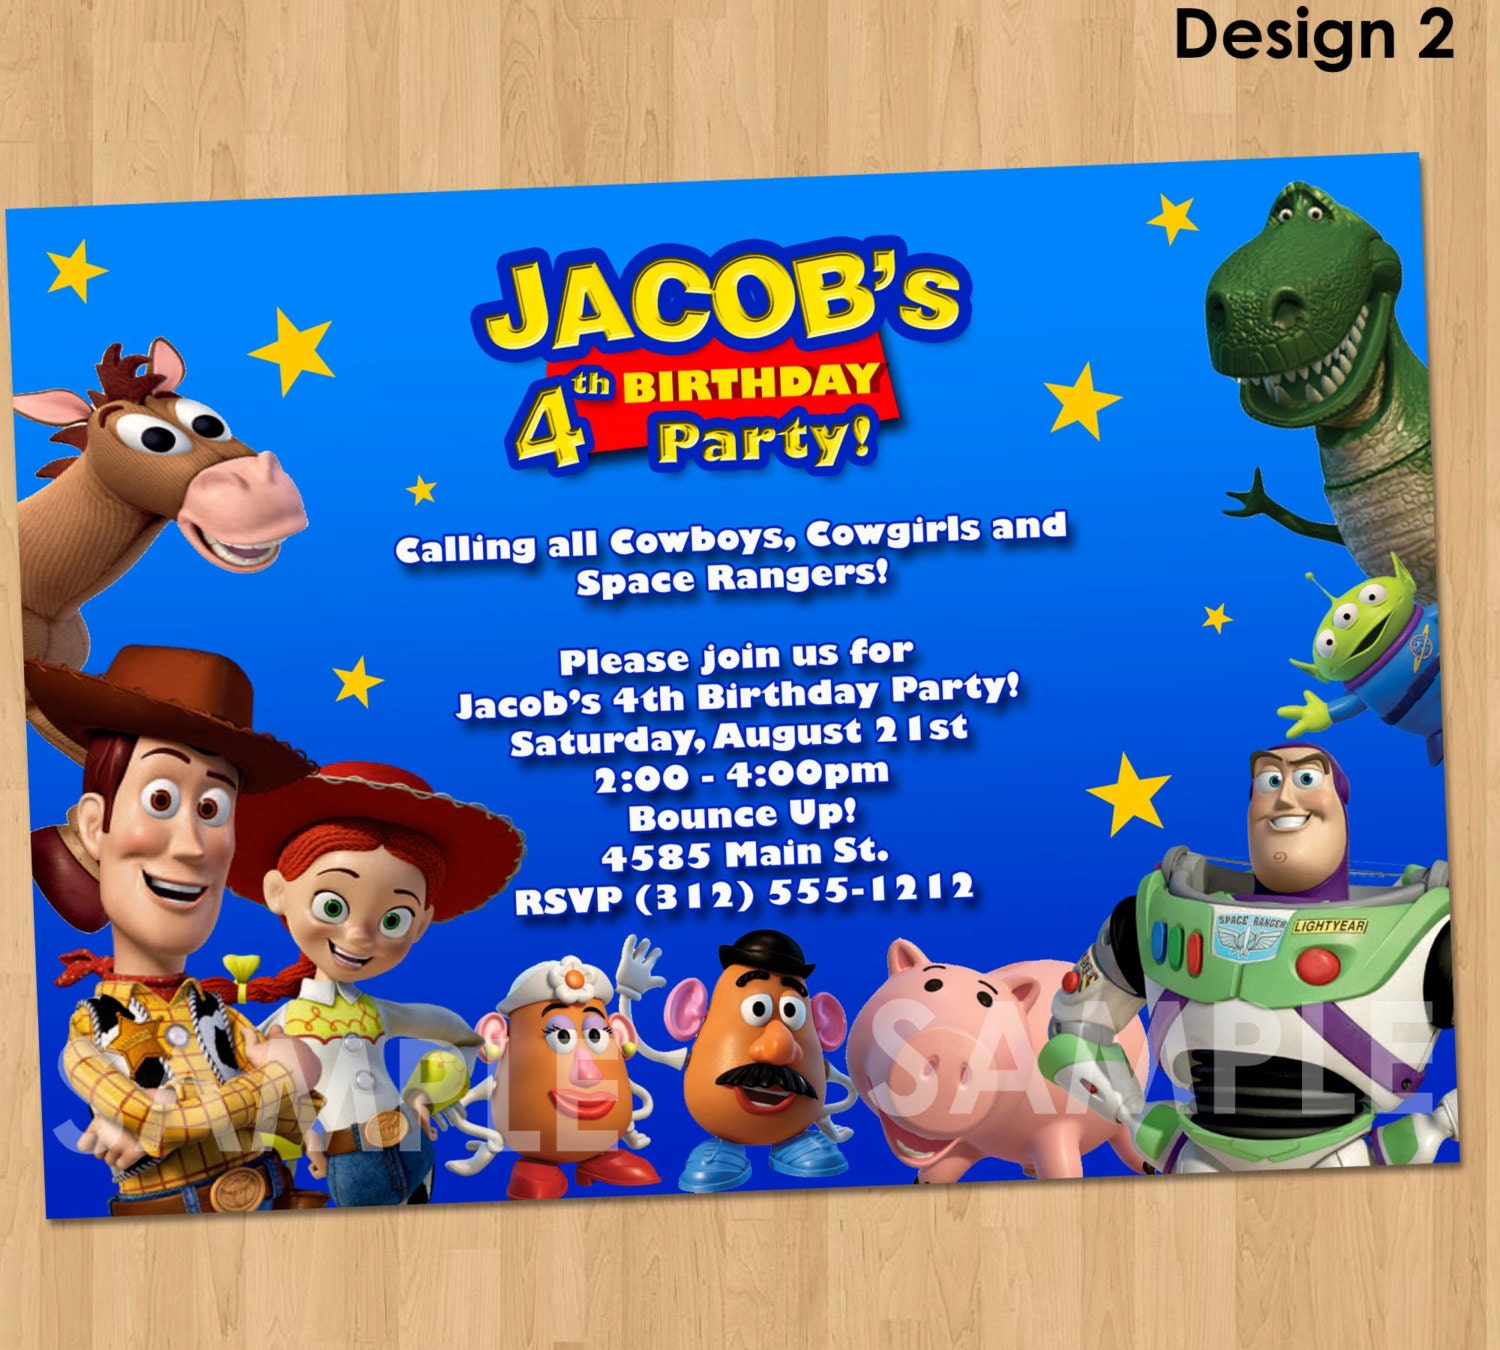 Toy story invitation toy story invite custom personalized for Toy story invites templates free